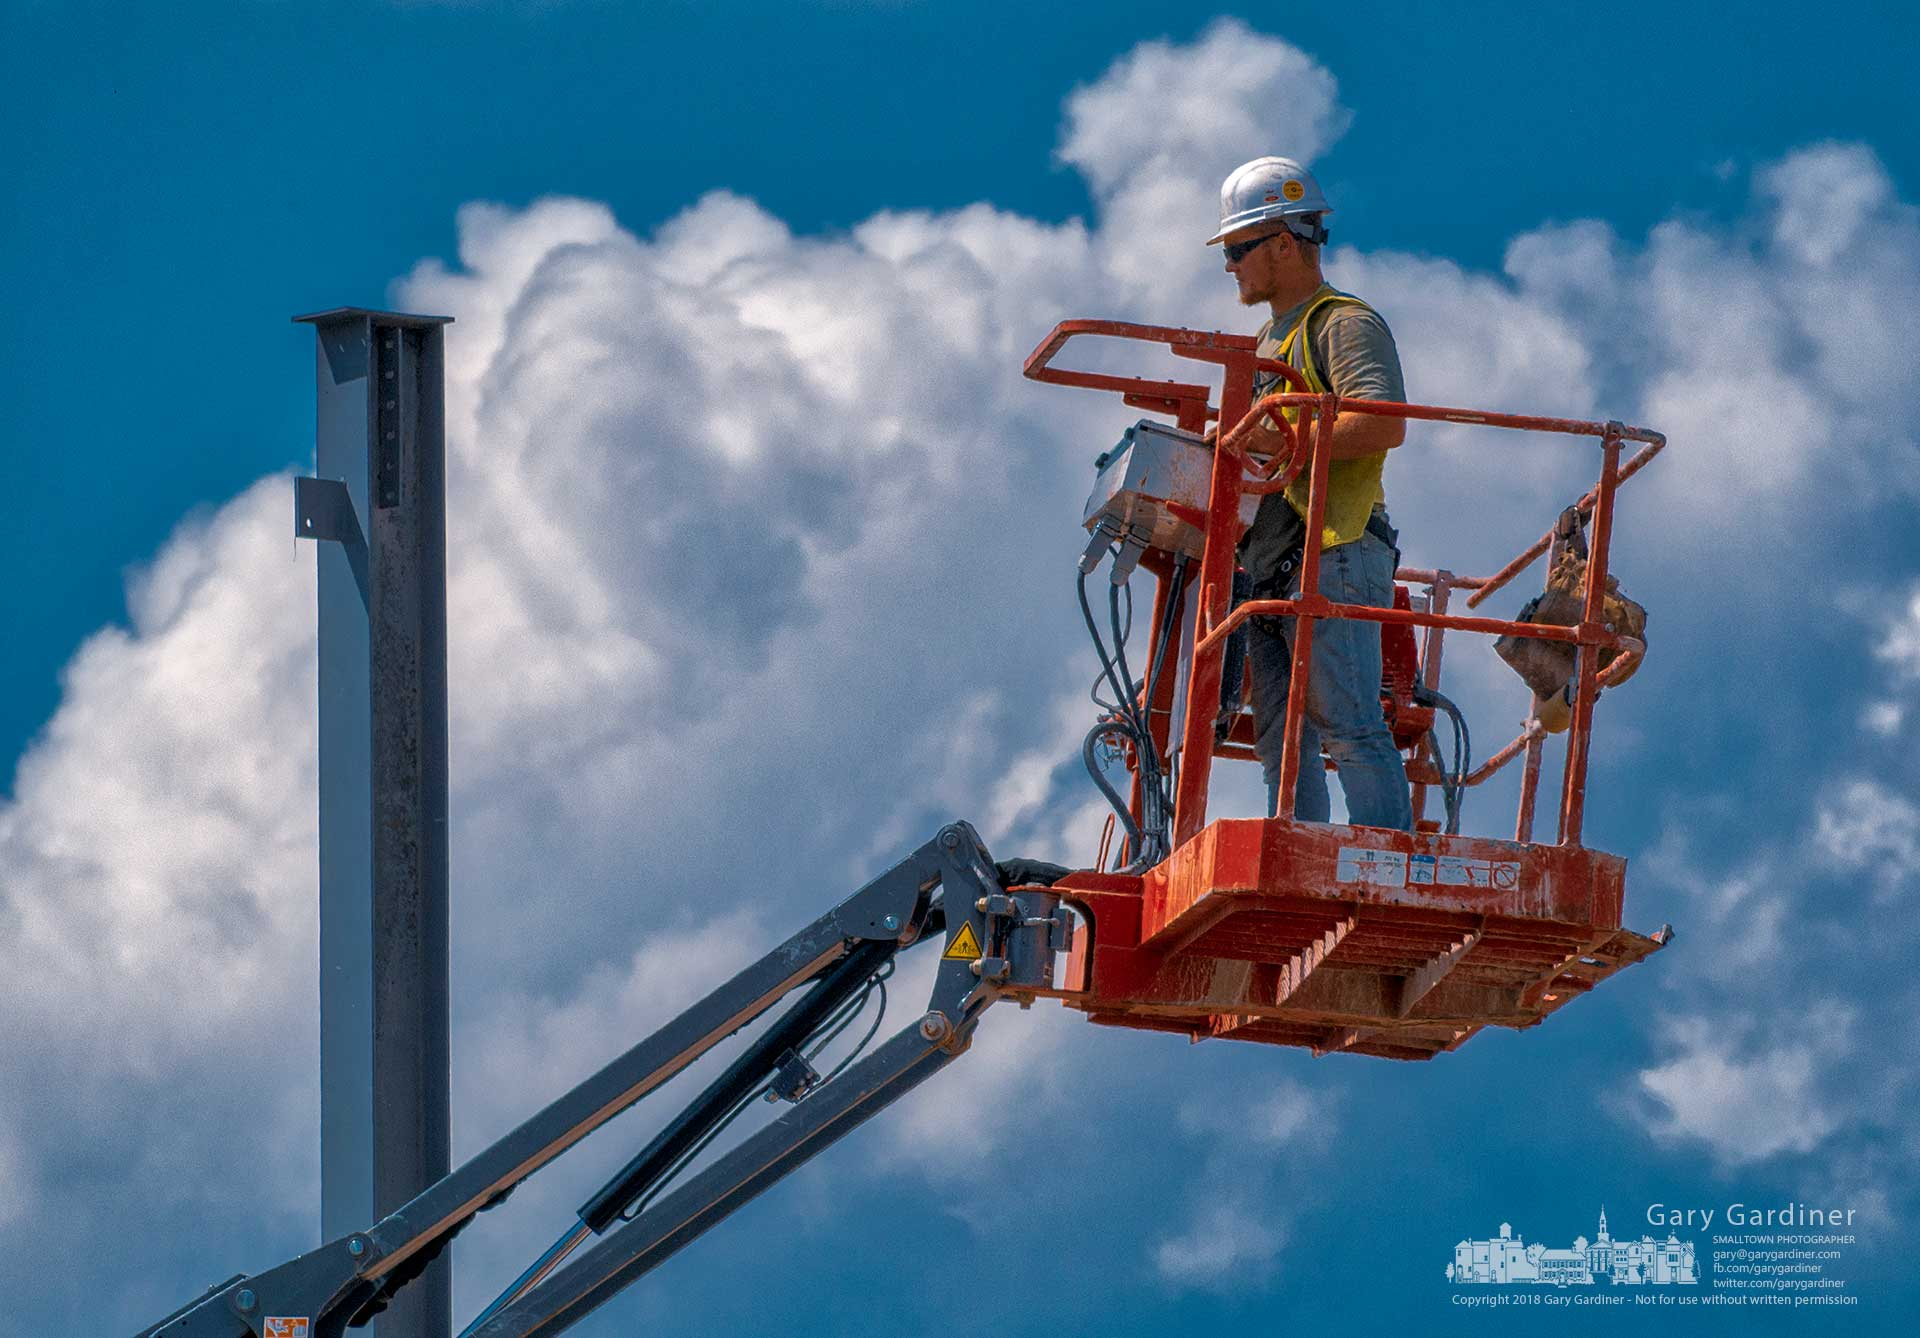 A steelworker inspects the top of a steel post installed for a medical office building on Altair Parkway. My Final Photo for Aug. 13, 2018.